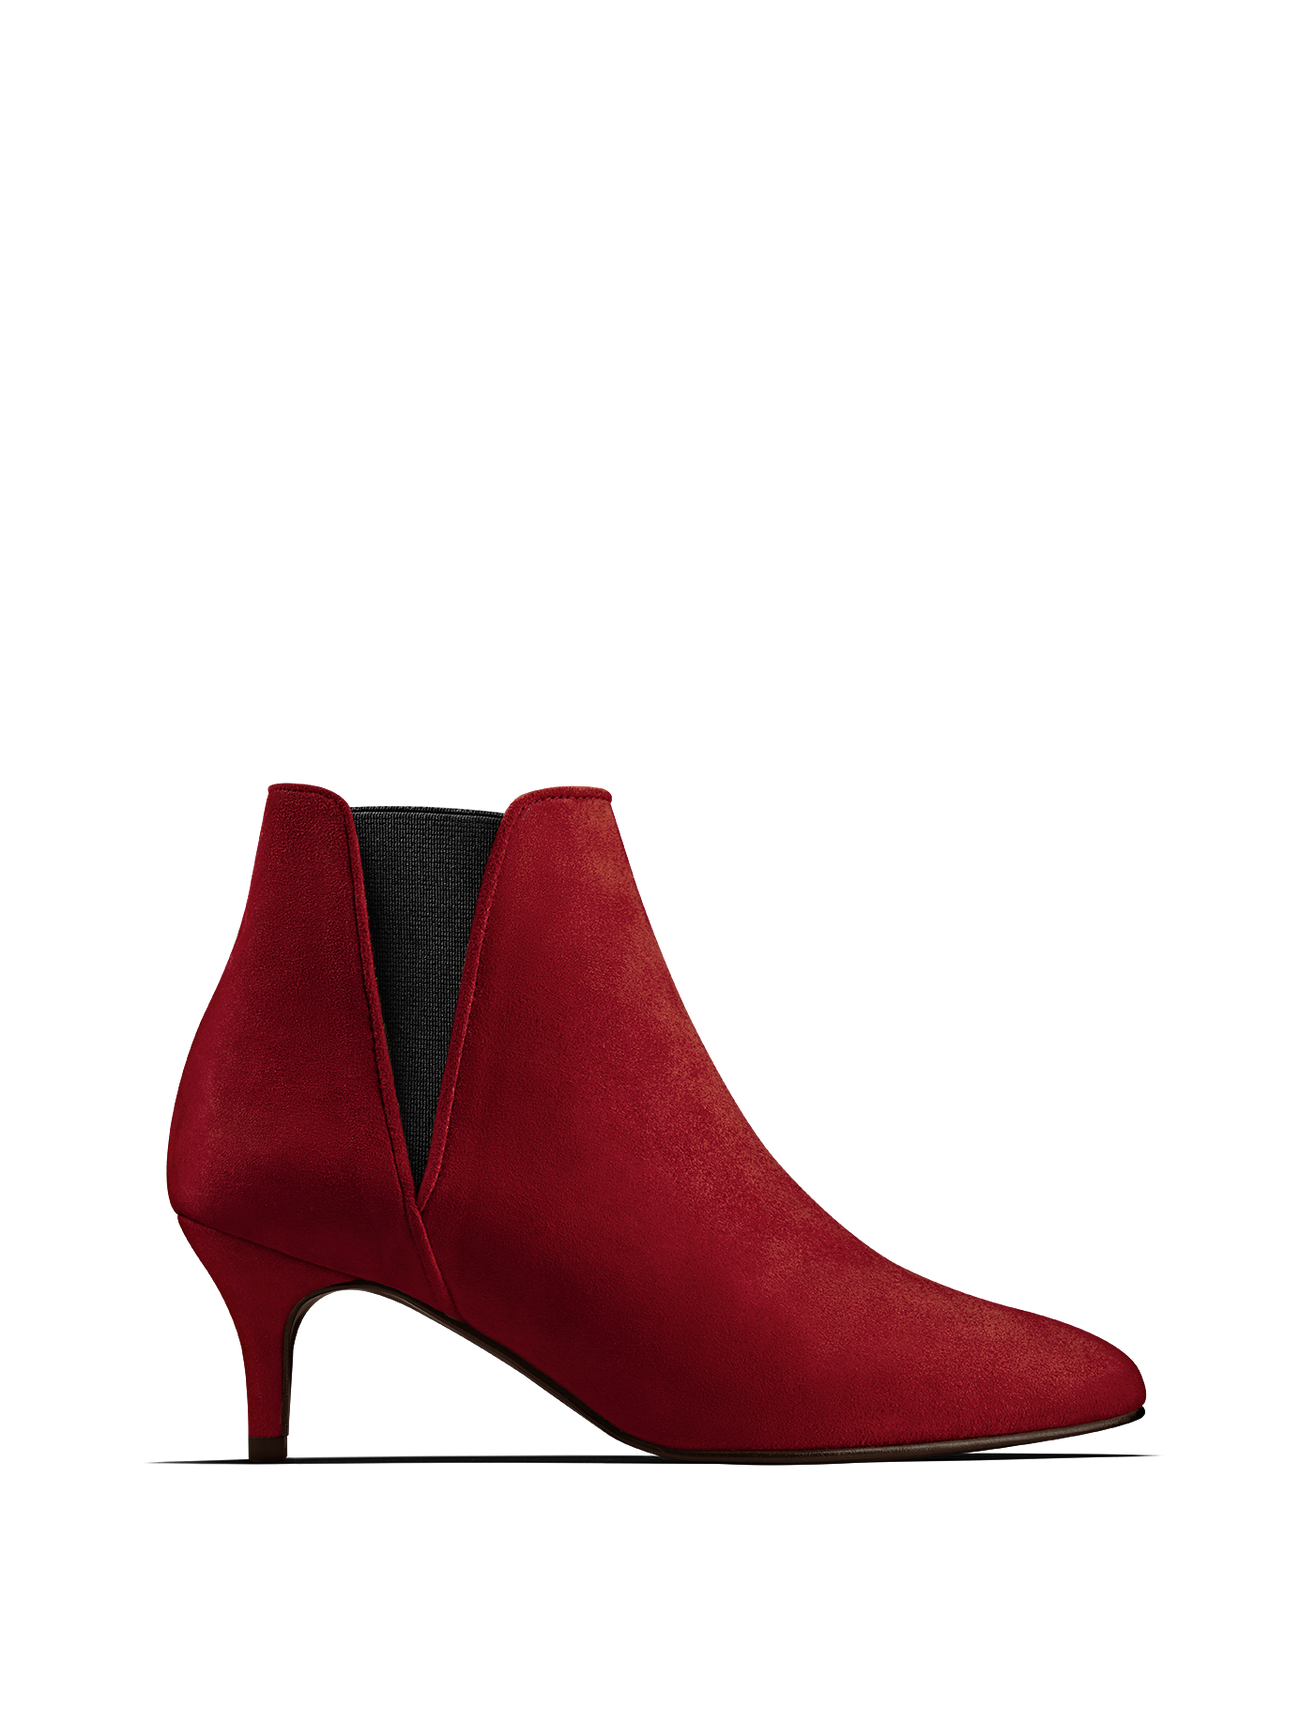 Somerton, our kitten heel Chelsea boot in eye-catching red suede.